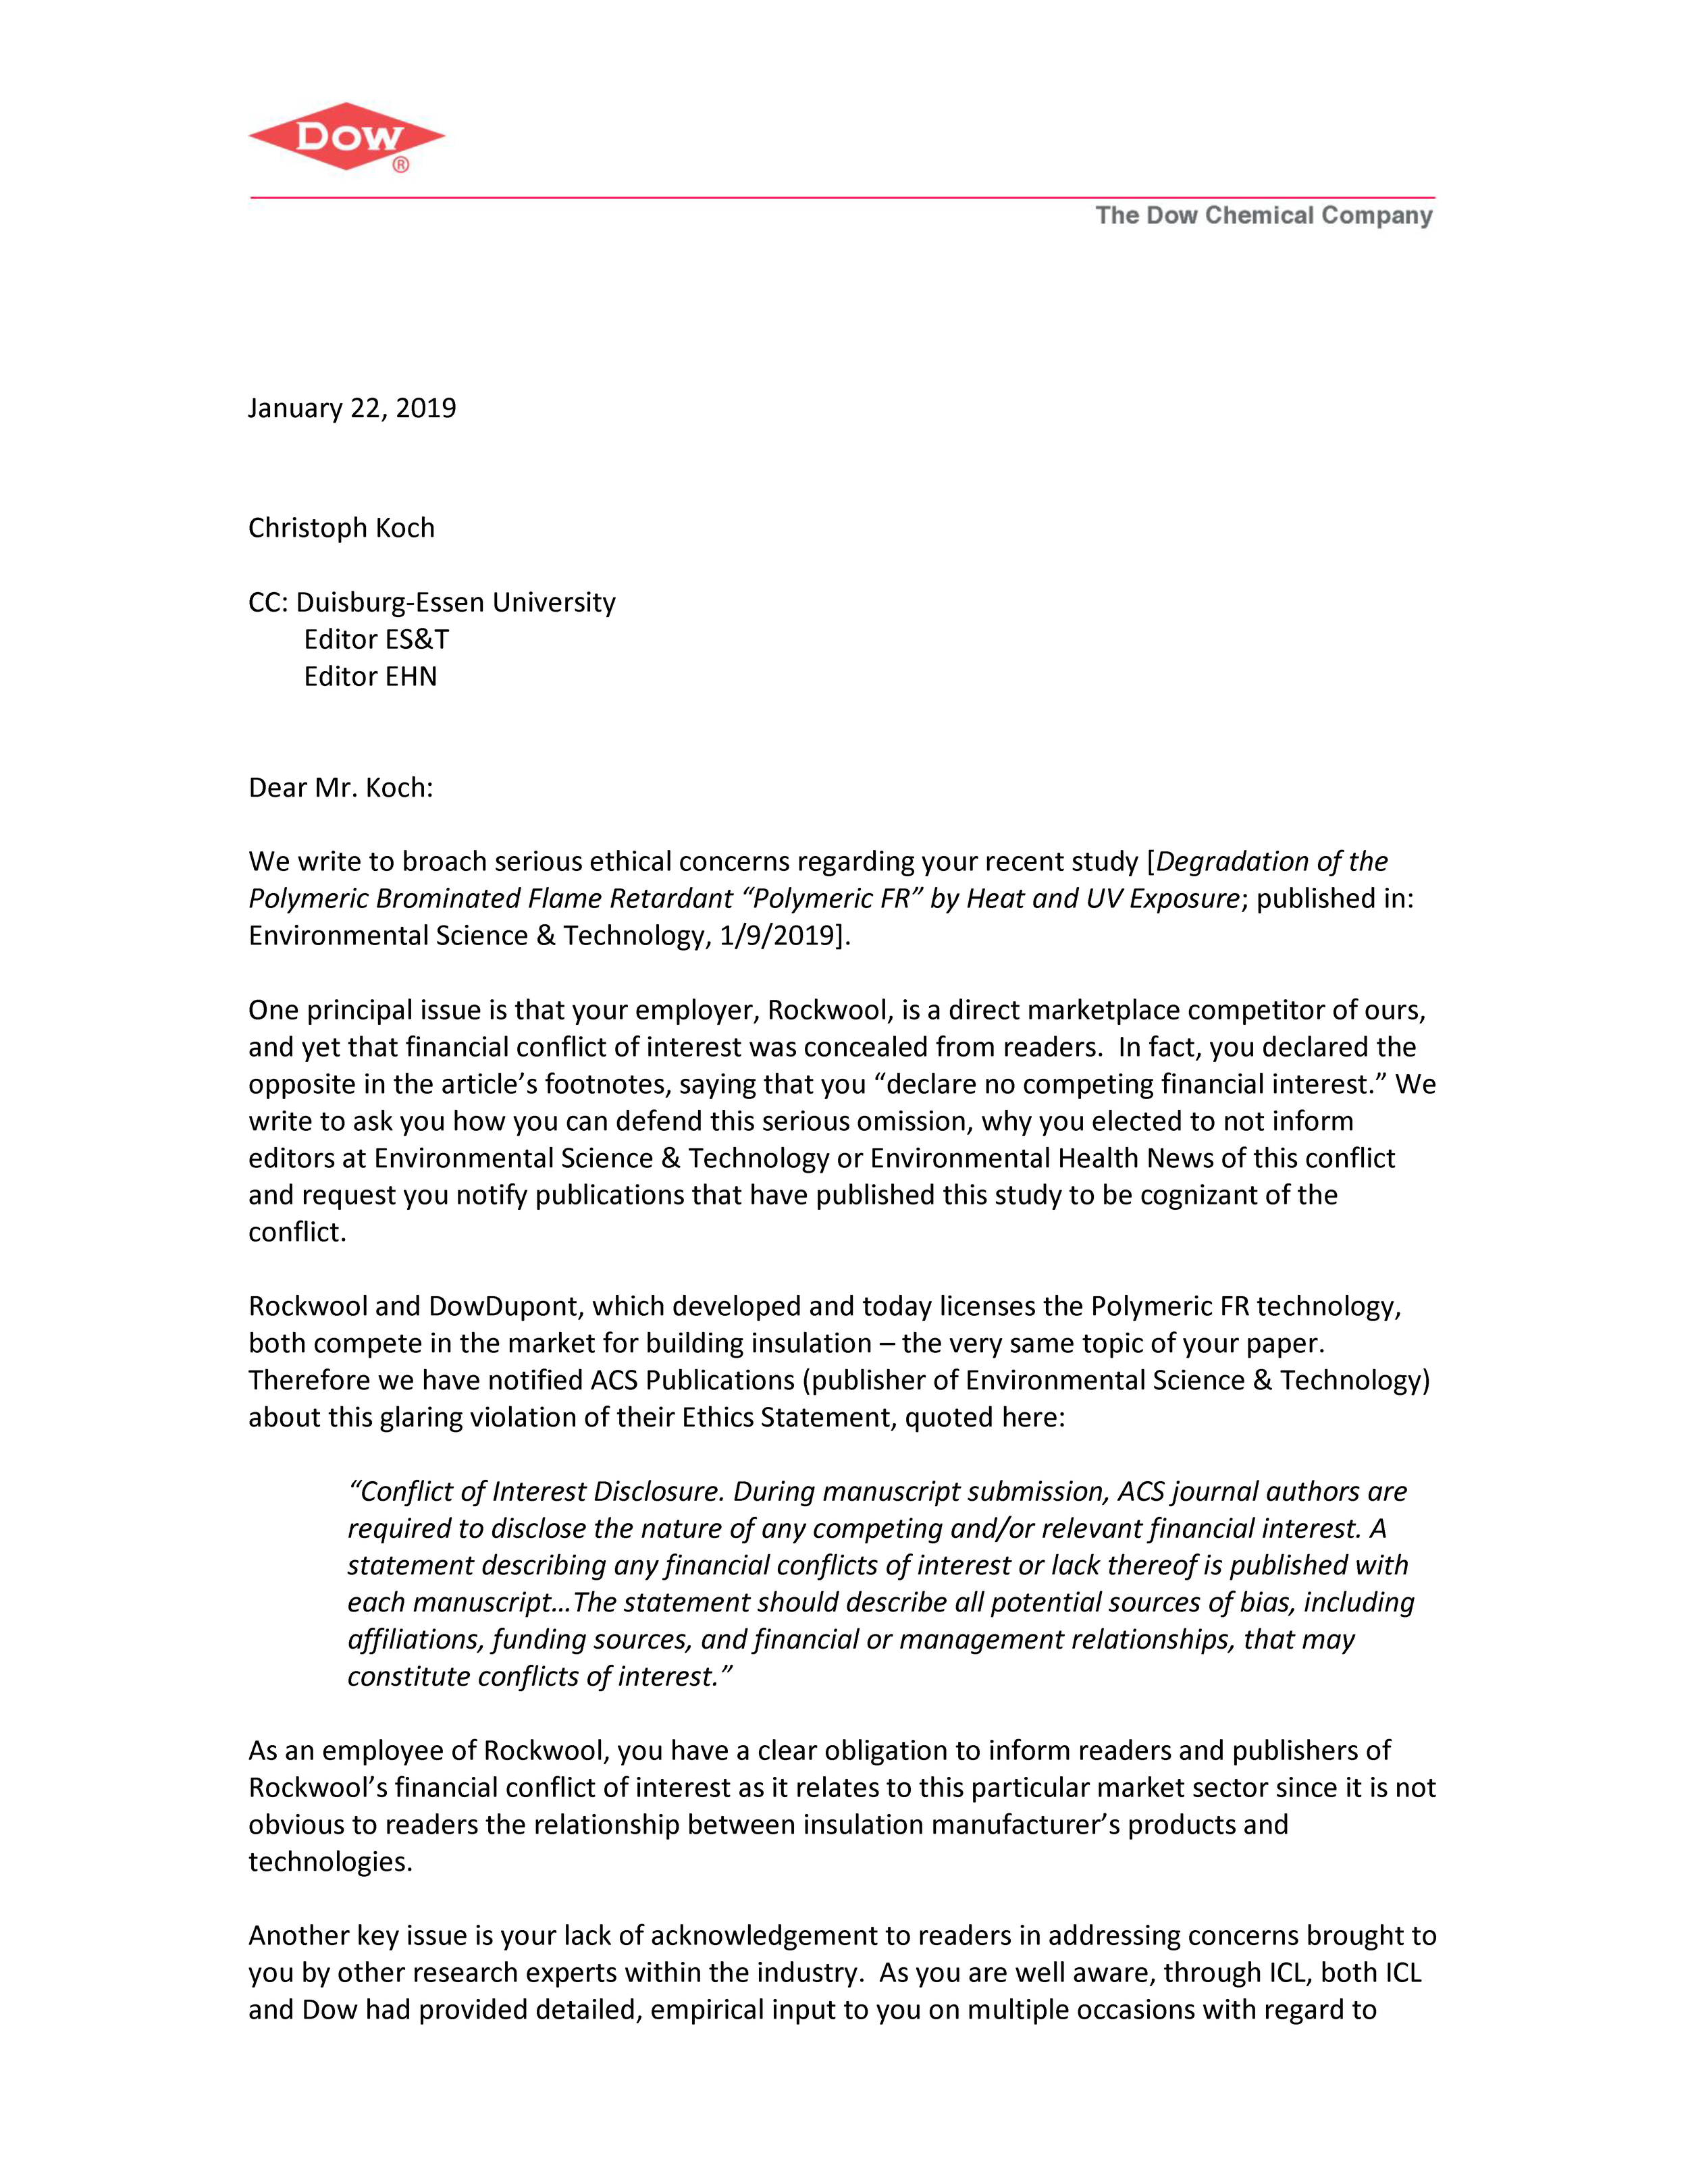 012219-Koch Study Letter1.2_Page_1.png